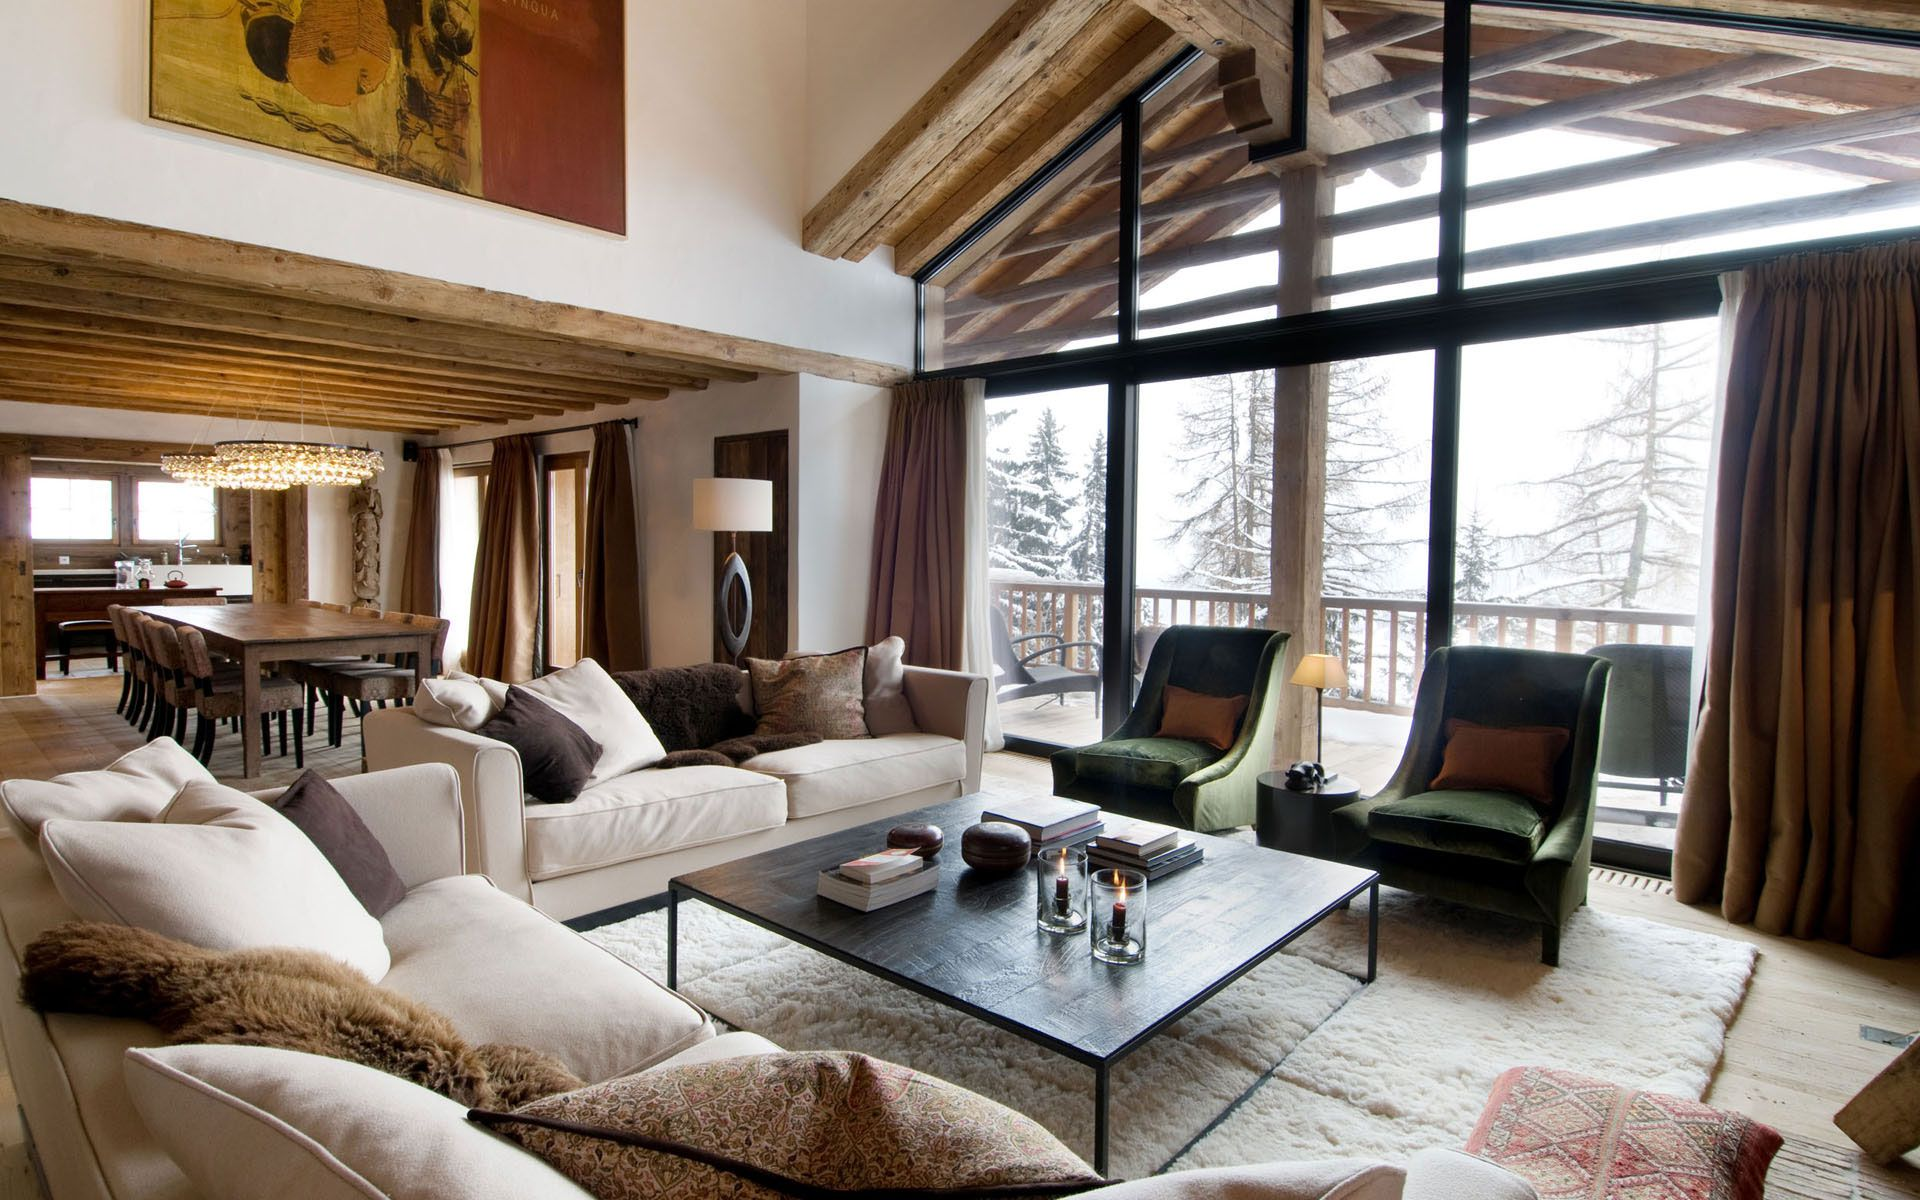 Luxury chalet dent blanche in valais caandesign for Design hotel ski